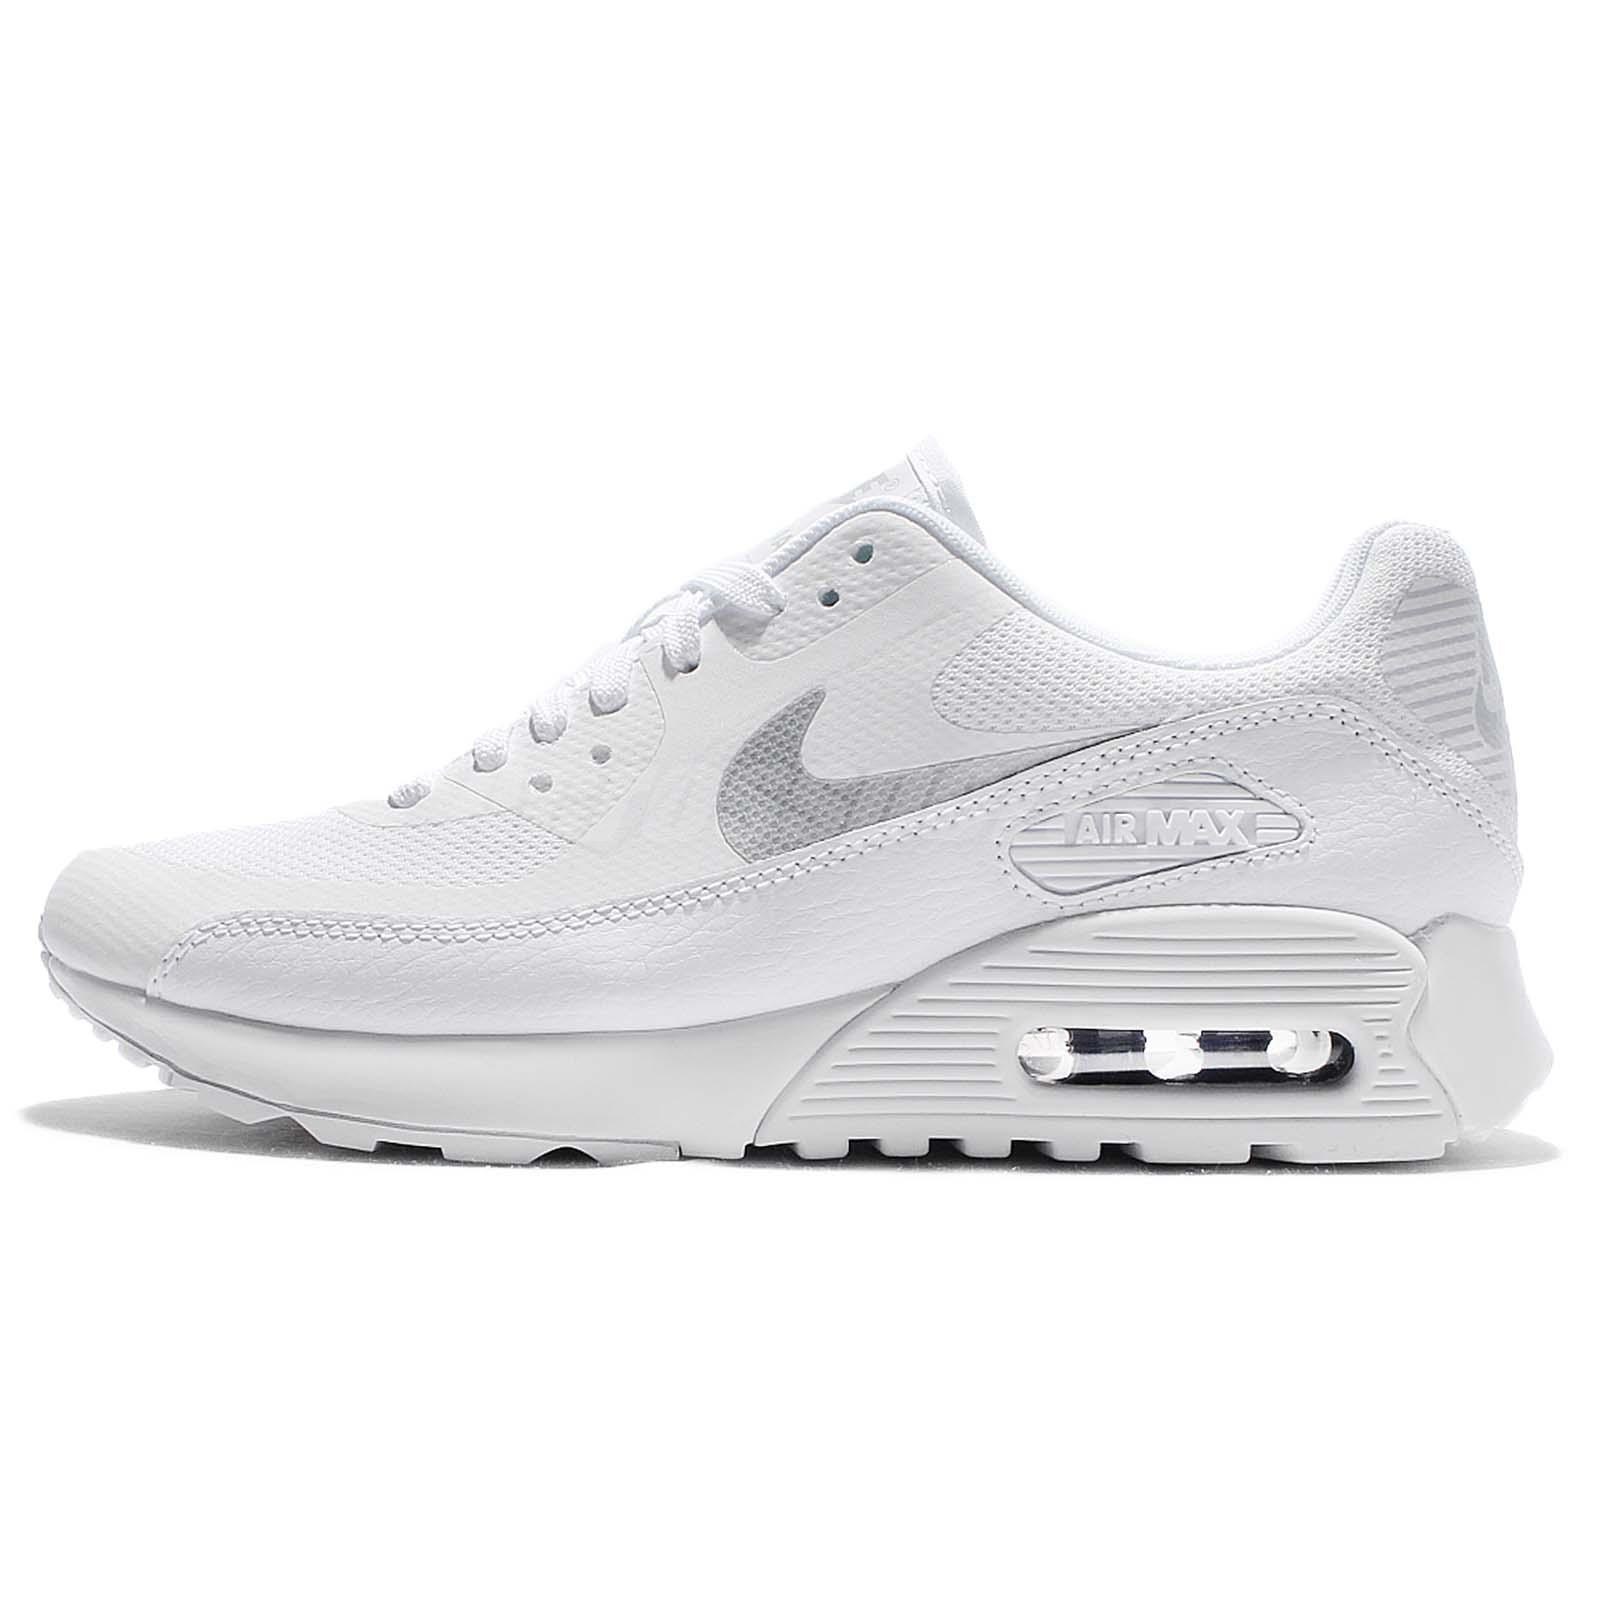 671af72873 ... Wmns Nike Air Max 90 Ultra 2.0 White Silver Women Running Shoes  881106-101 ...